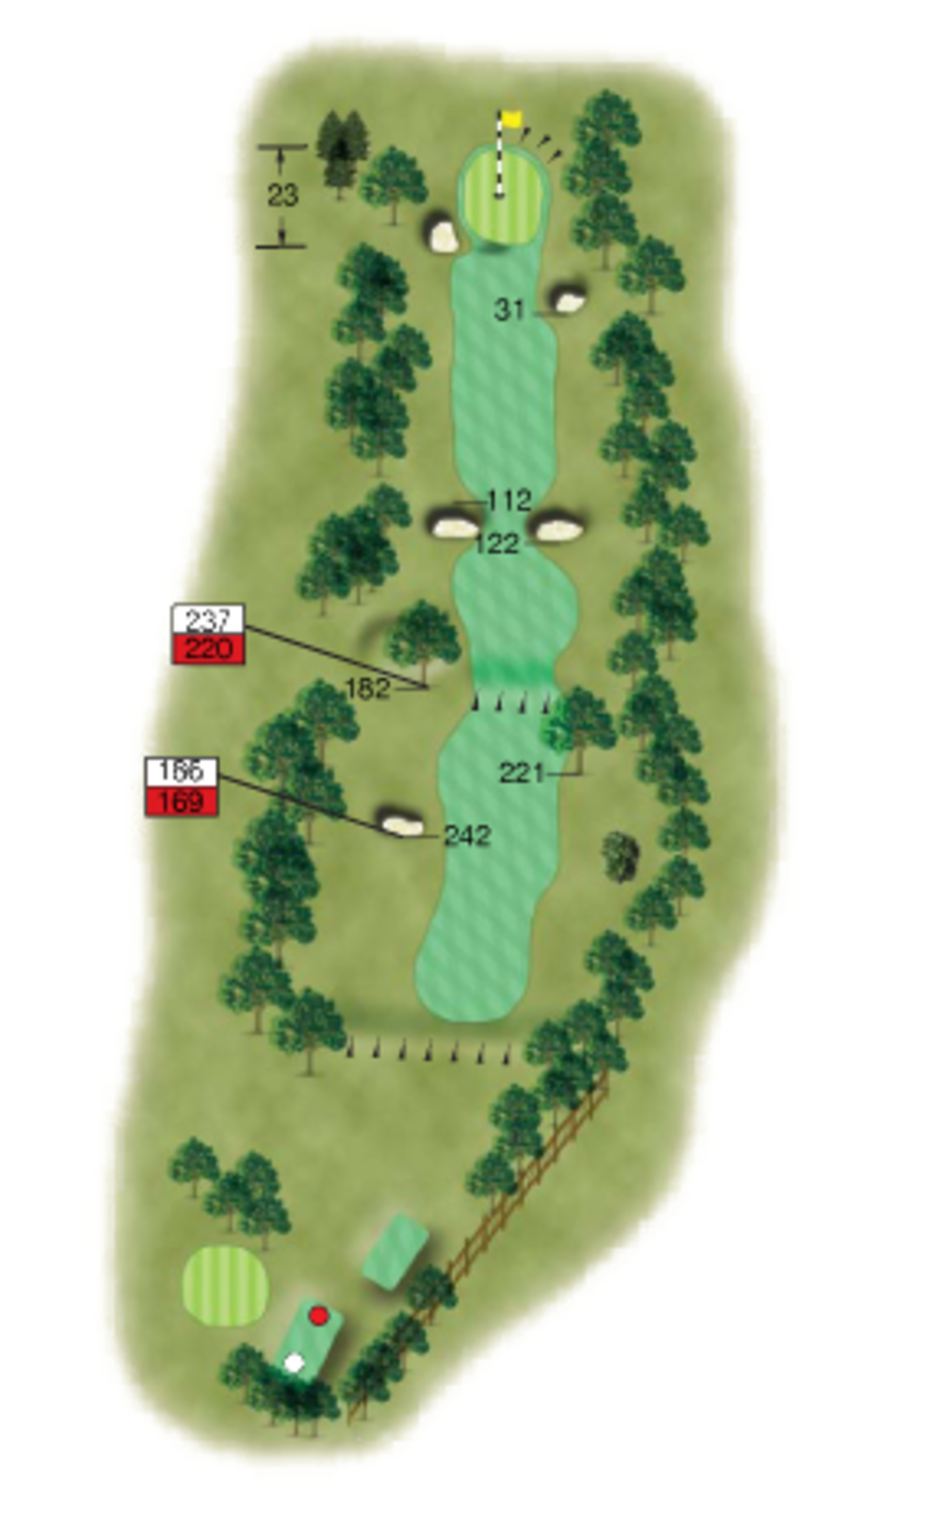 6 Woolton Golf Club Merseyside Hole Diagram Tip From The Pro